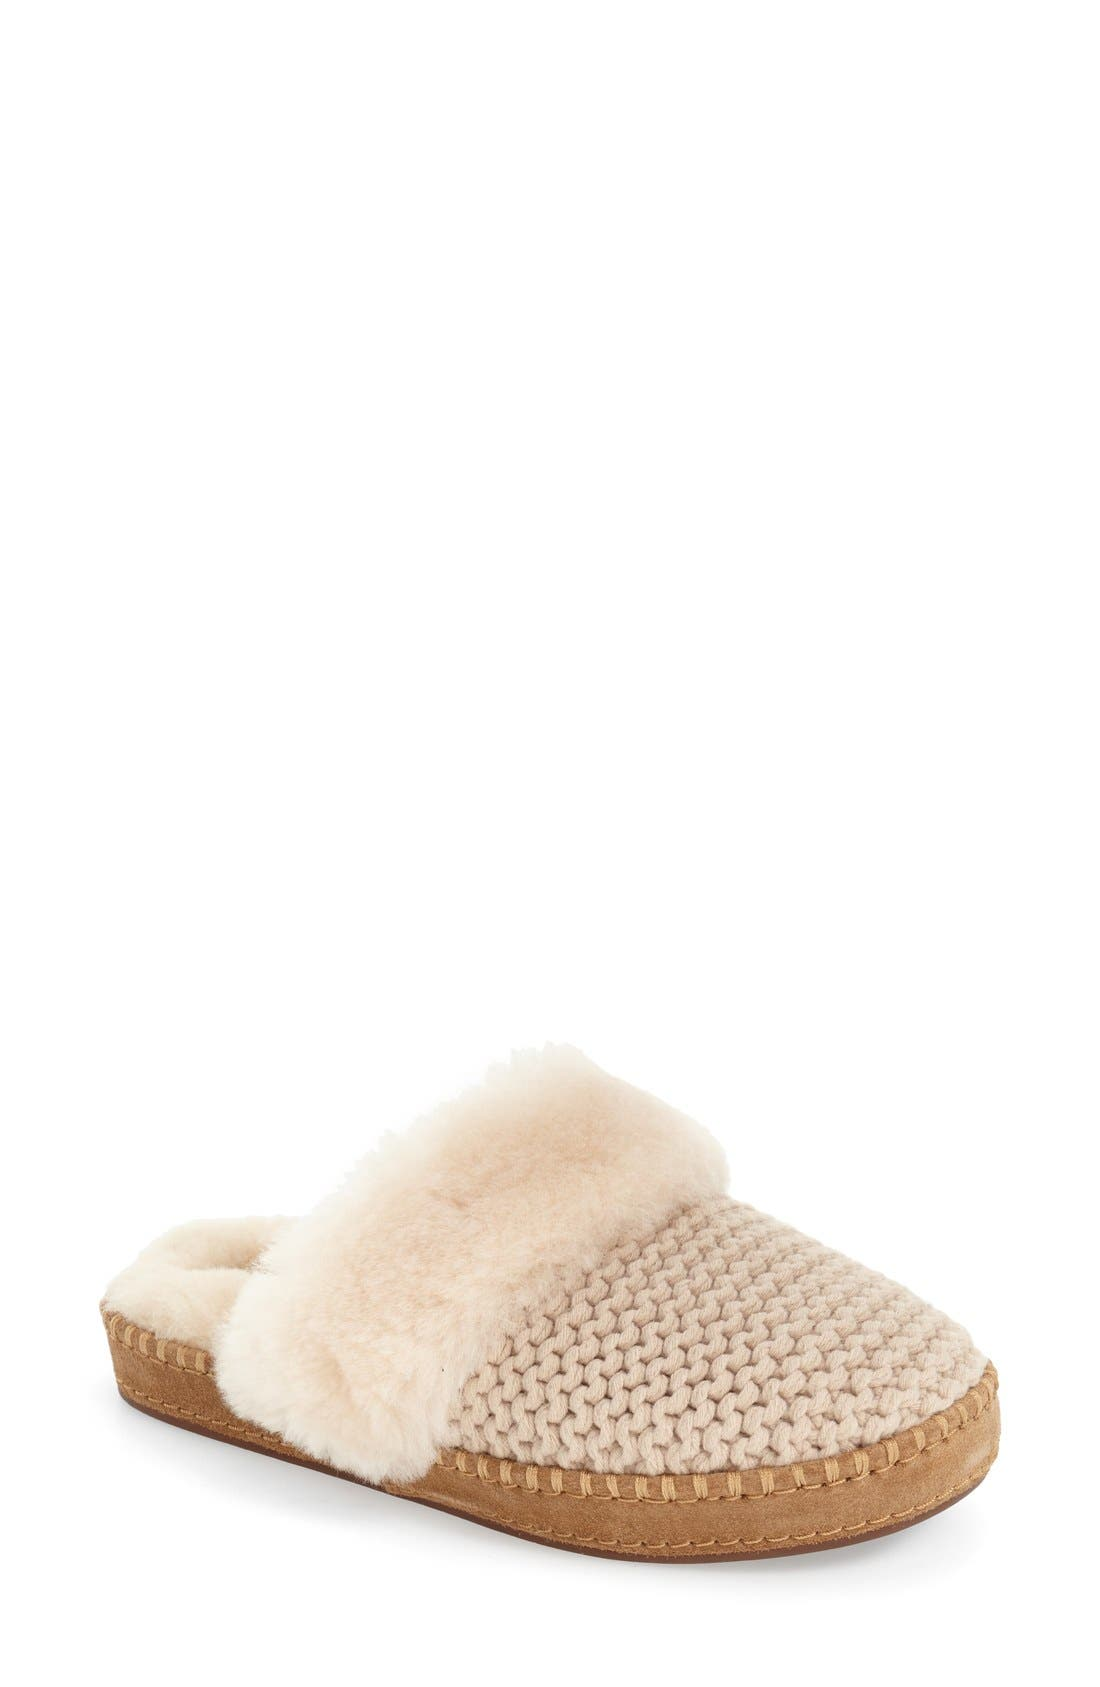 Alternate Image 1 Selected - UGG® Aira Knit Scuff Slipper (Women)